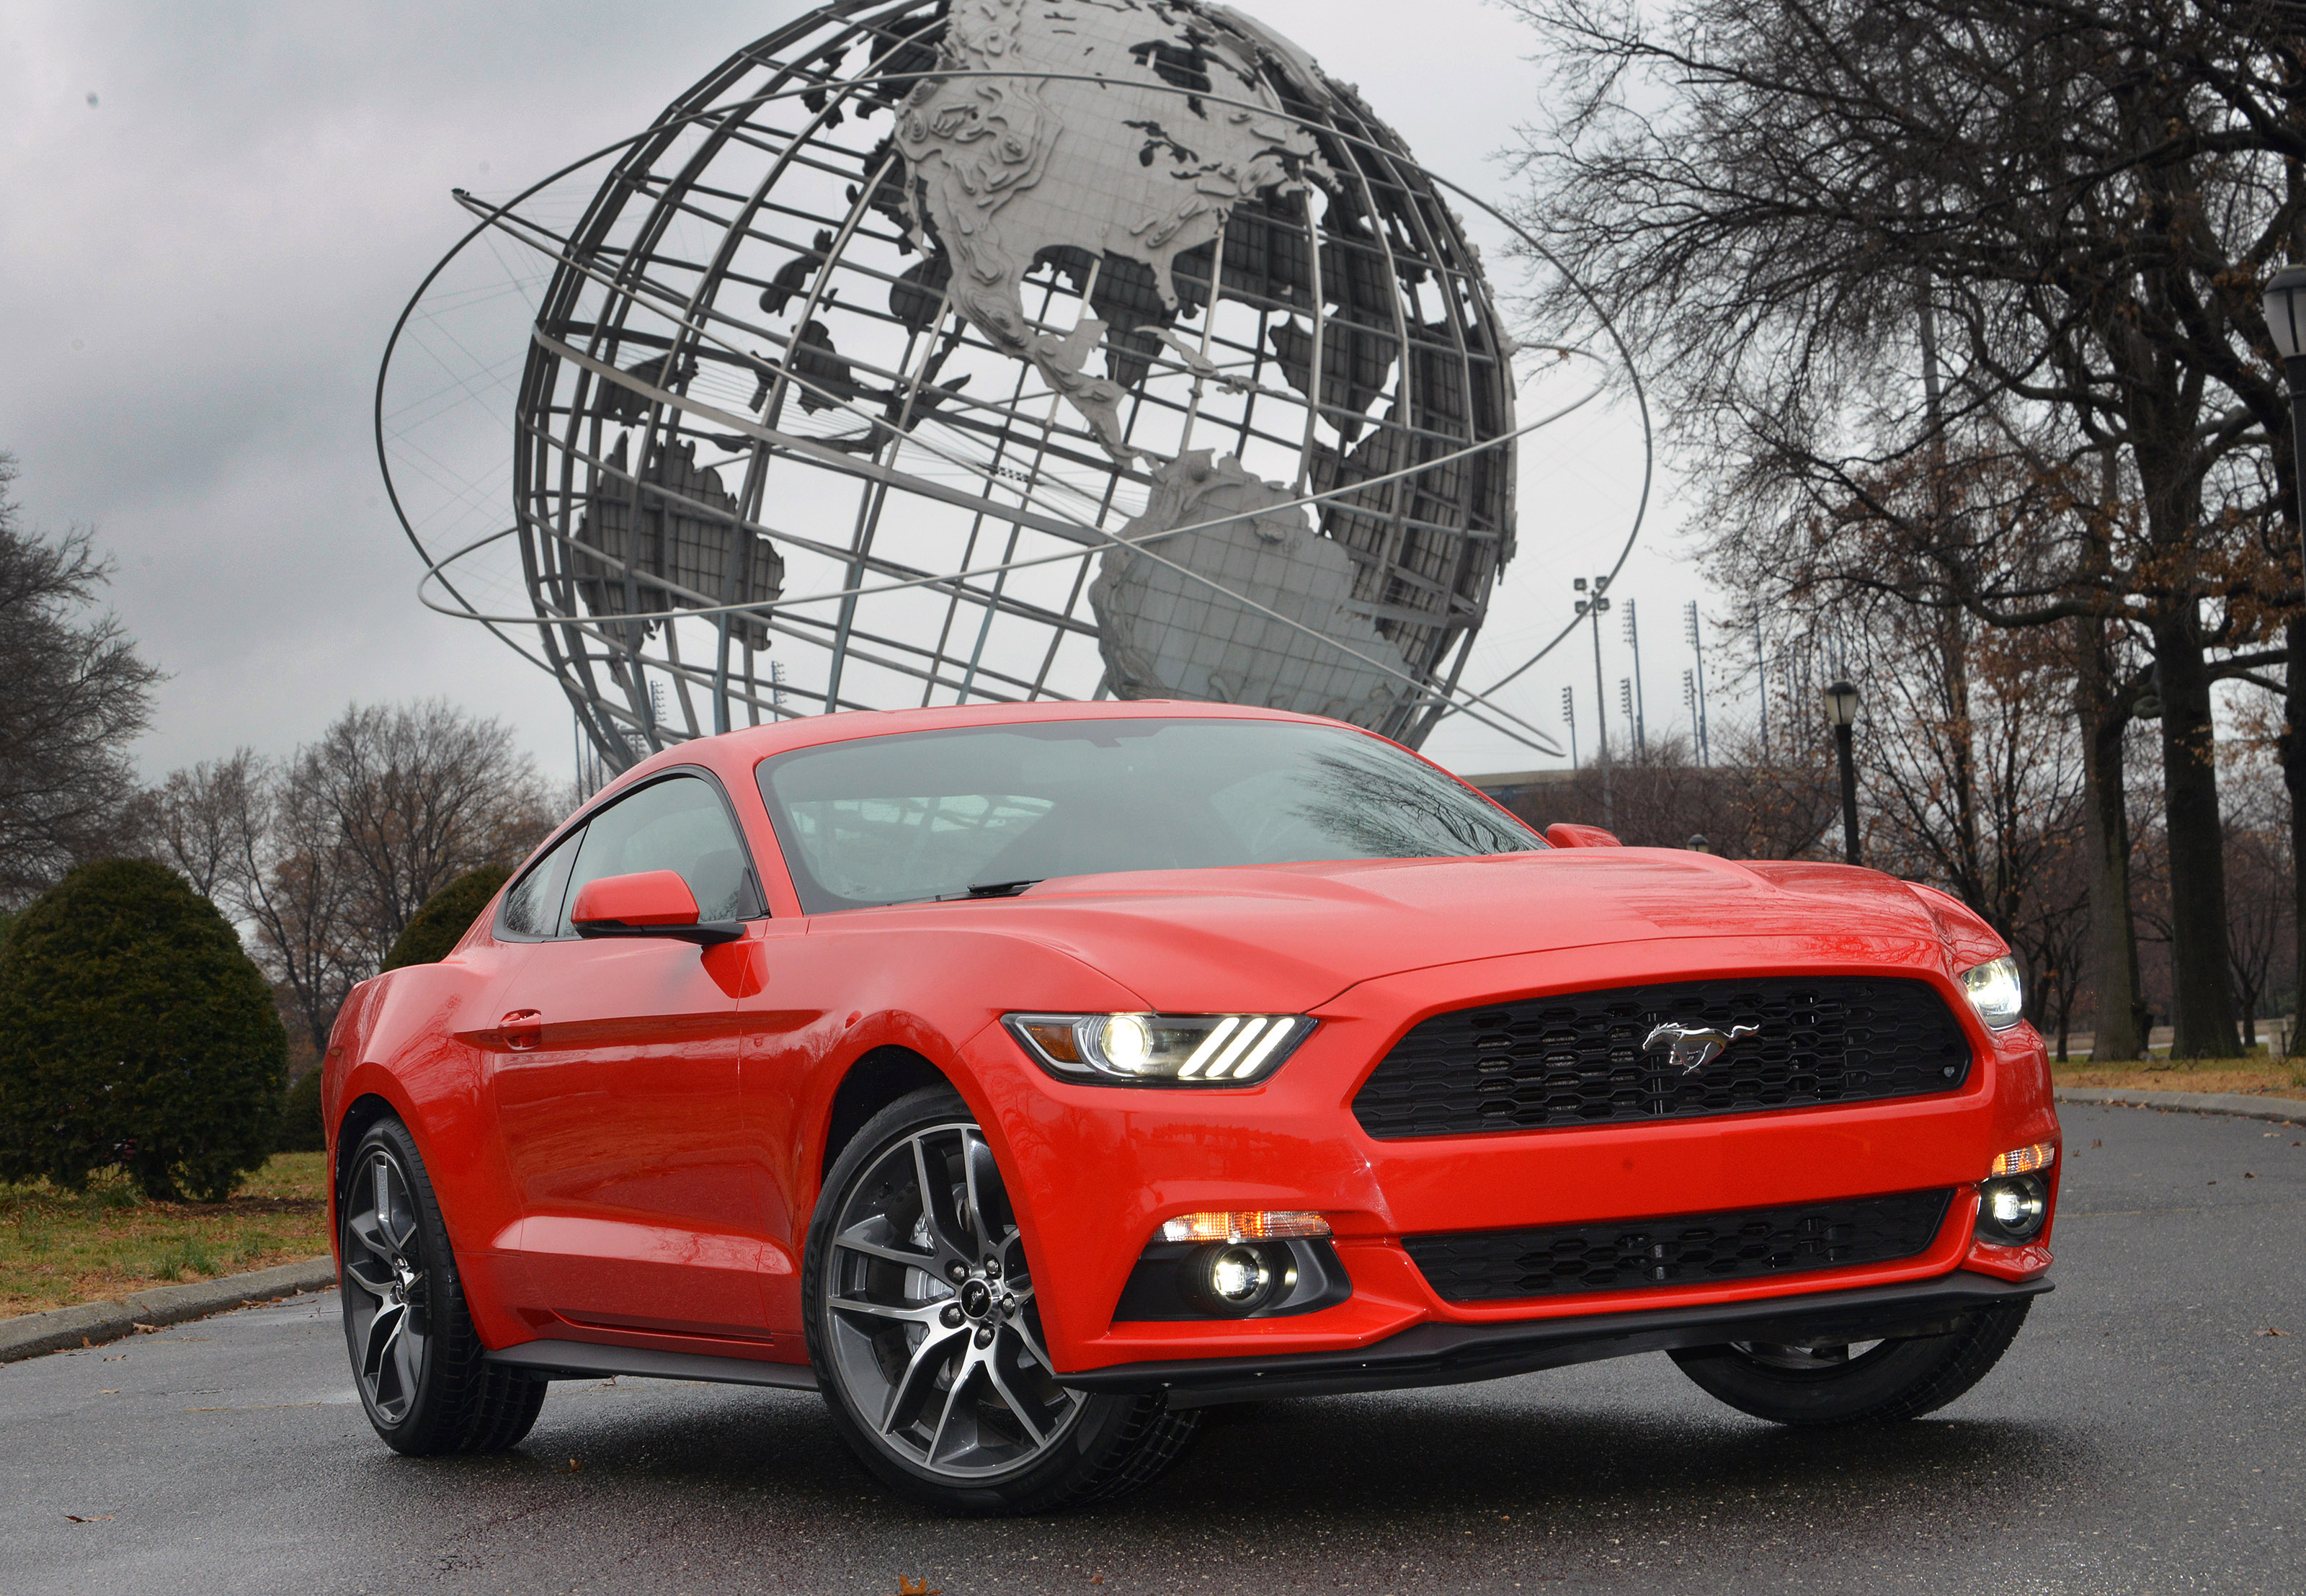 2015 mustang should you buy the v6 or the ecoboost motor review. Black Bedroom Furniture Sets. Home Design Ideas